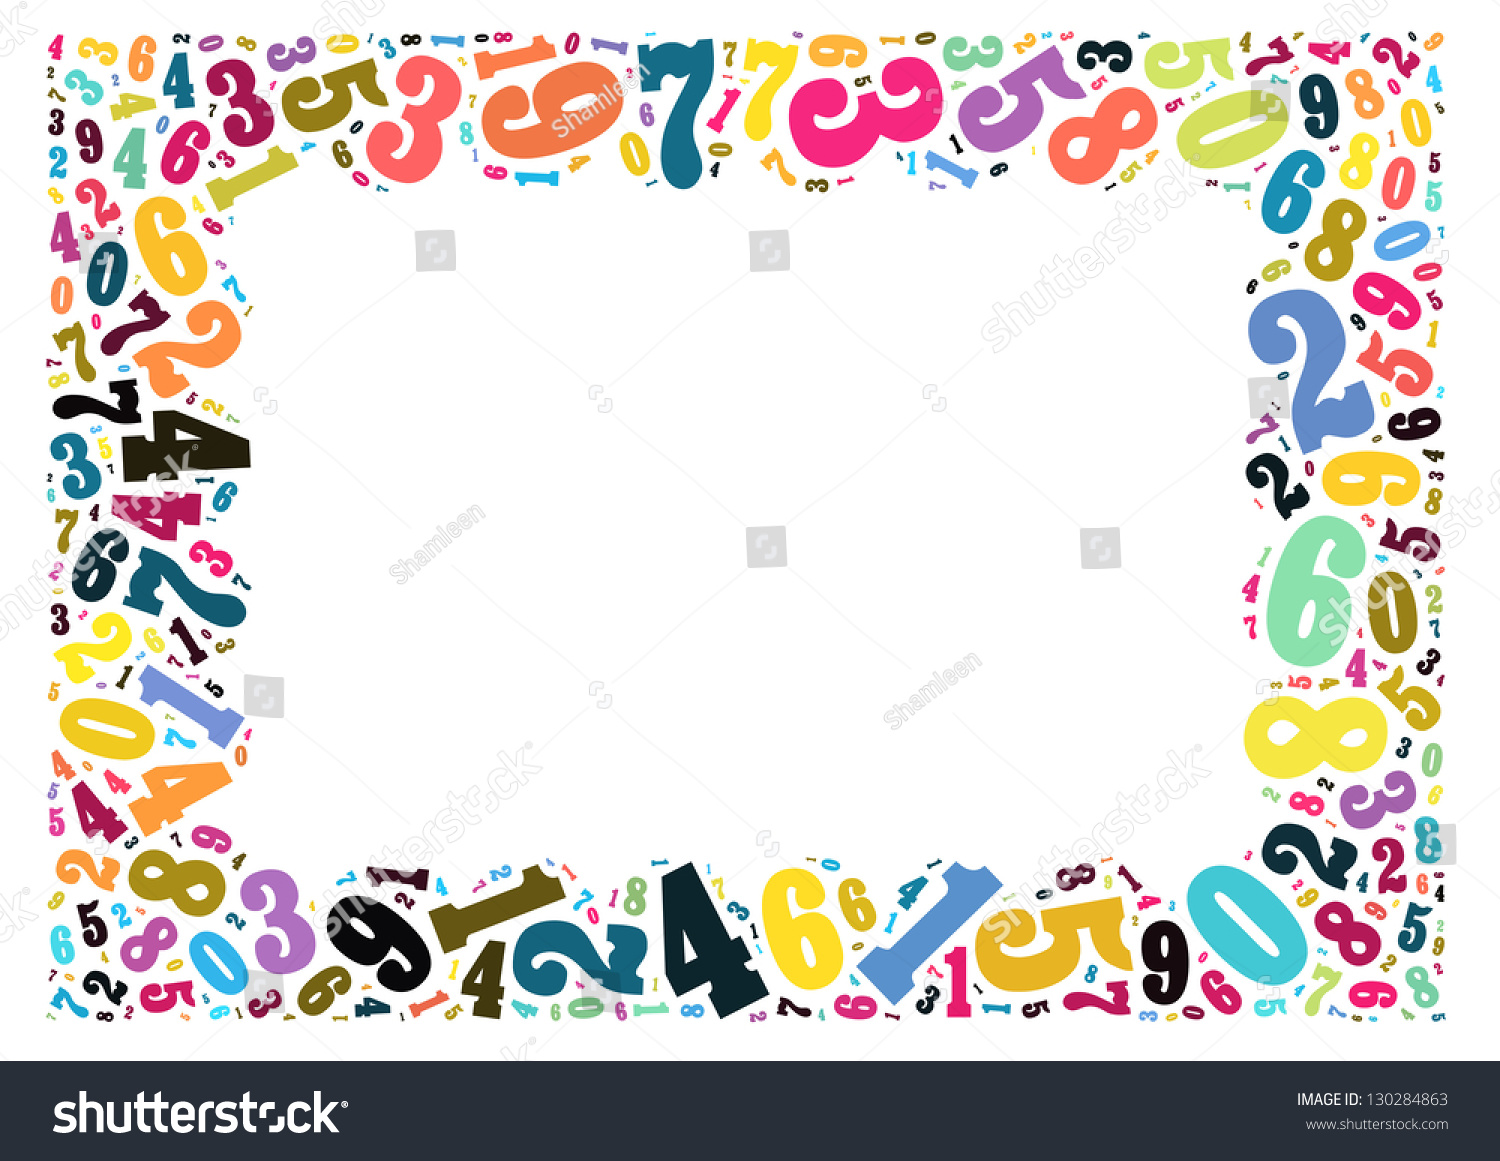 Free Word Art Templates Stock Images   Shutterstock